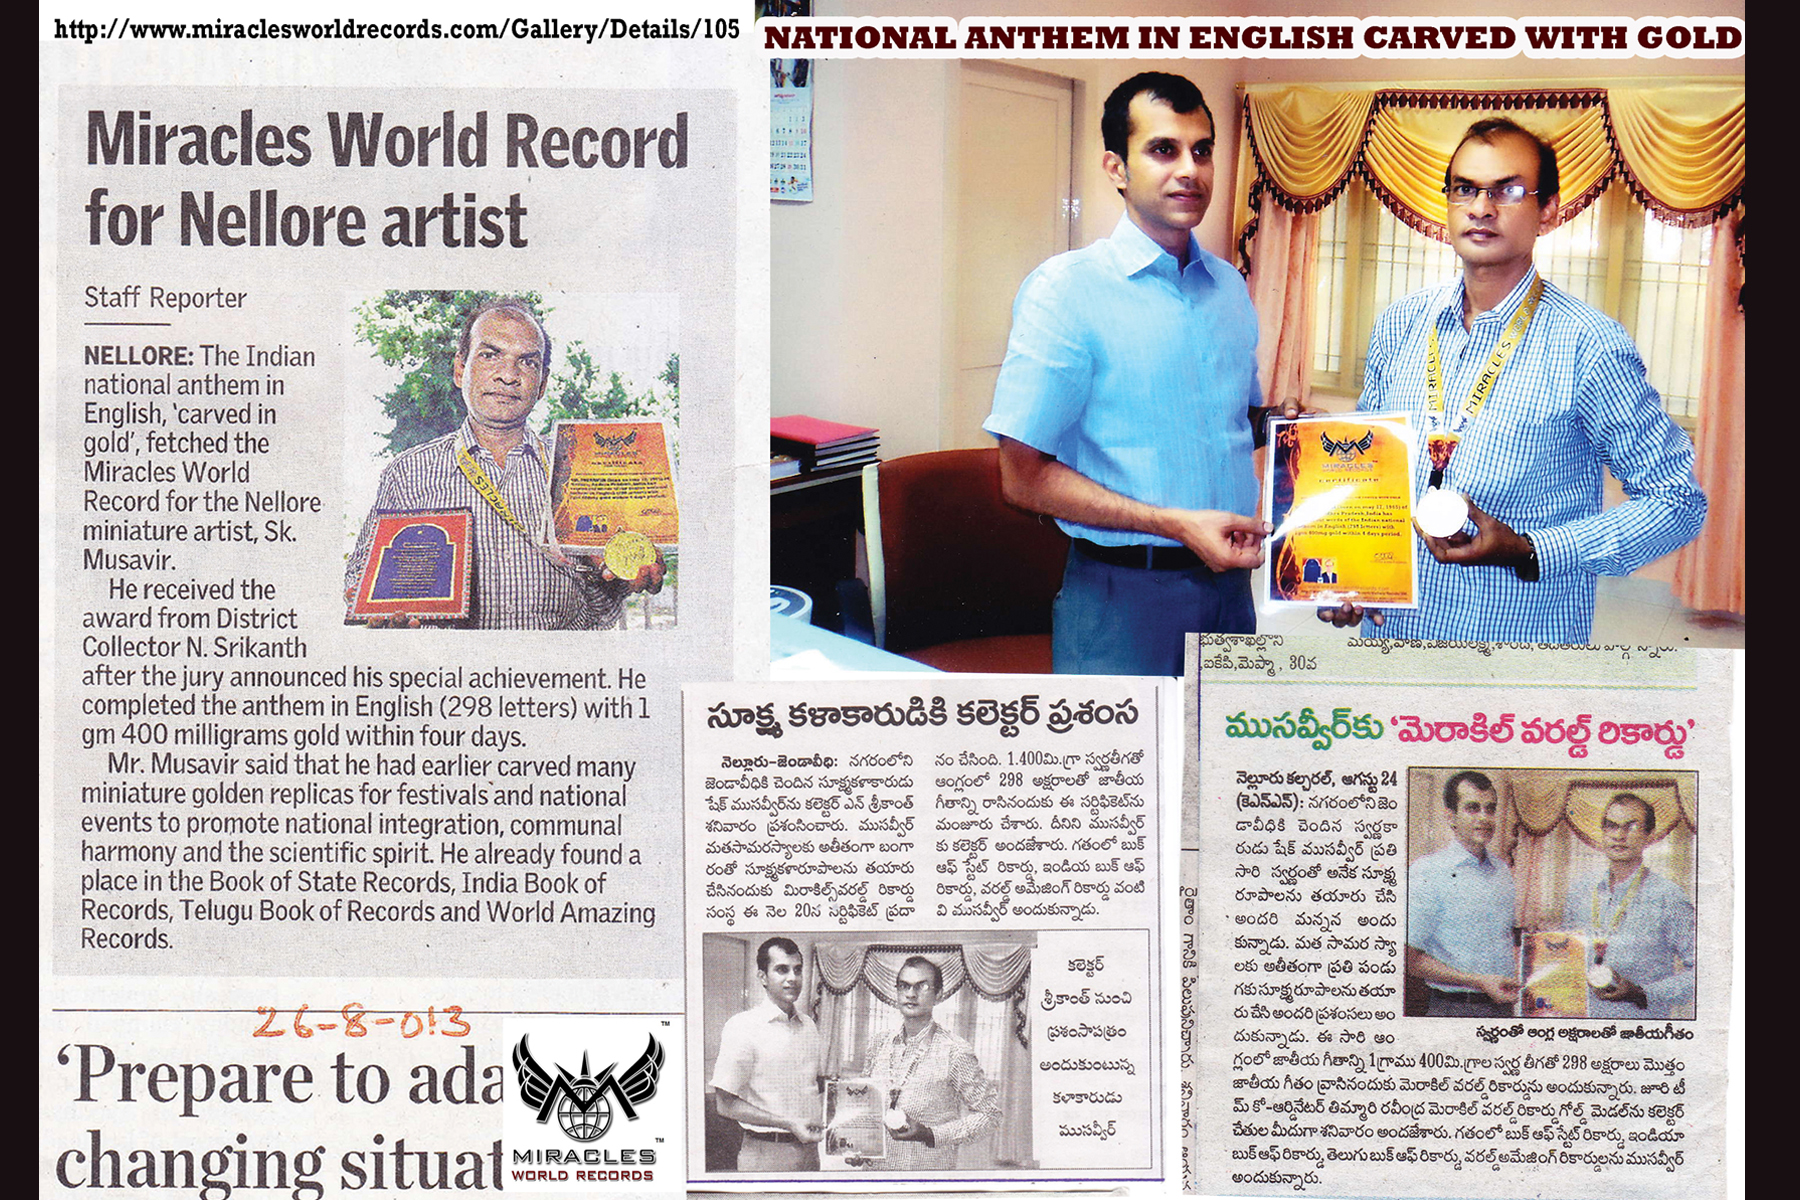 SK. MUSAVIR received miracles world records certificate by nellore  District Collector N. Srikanth